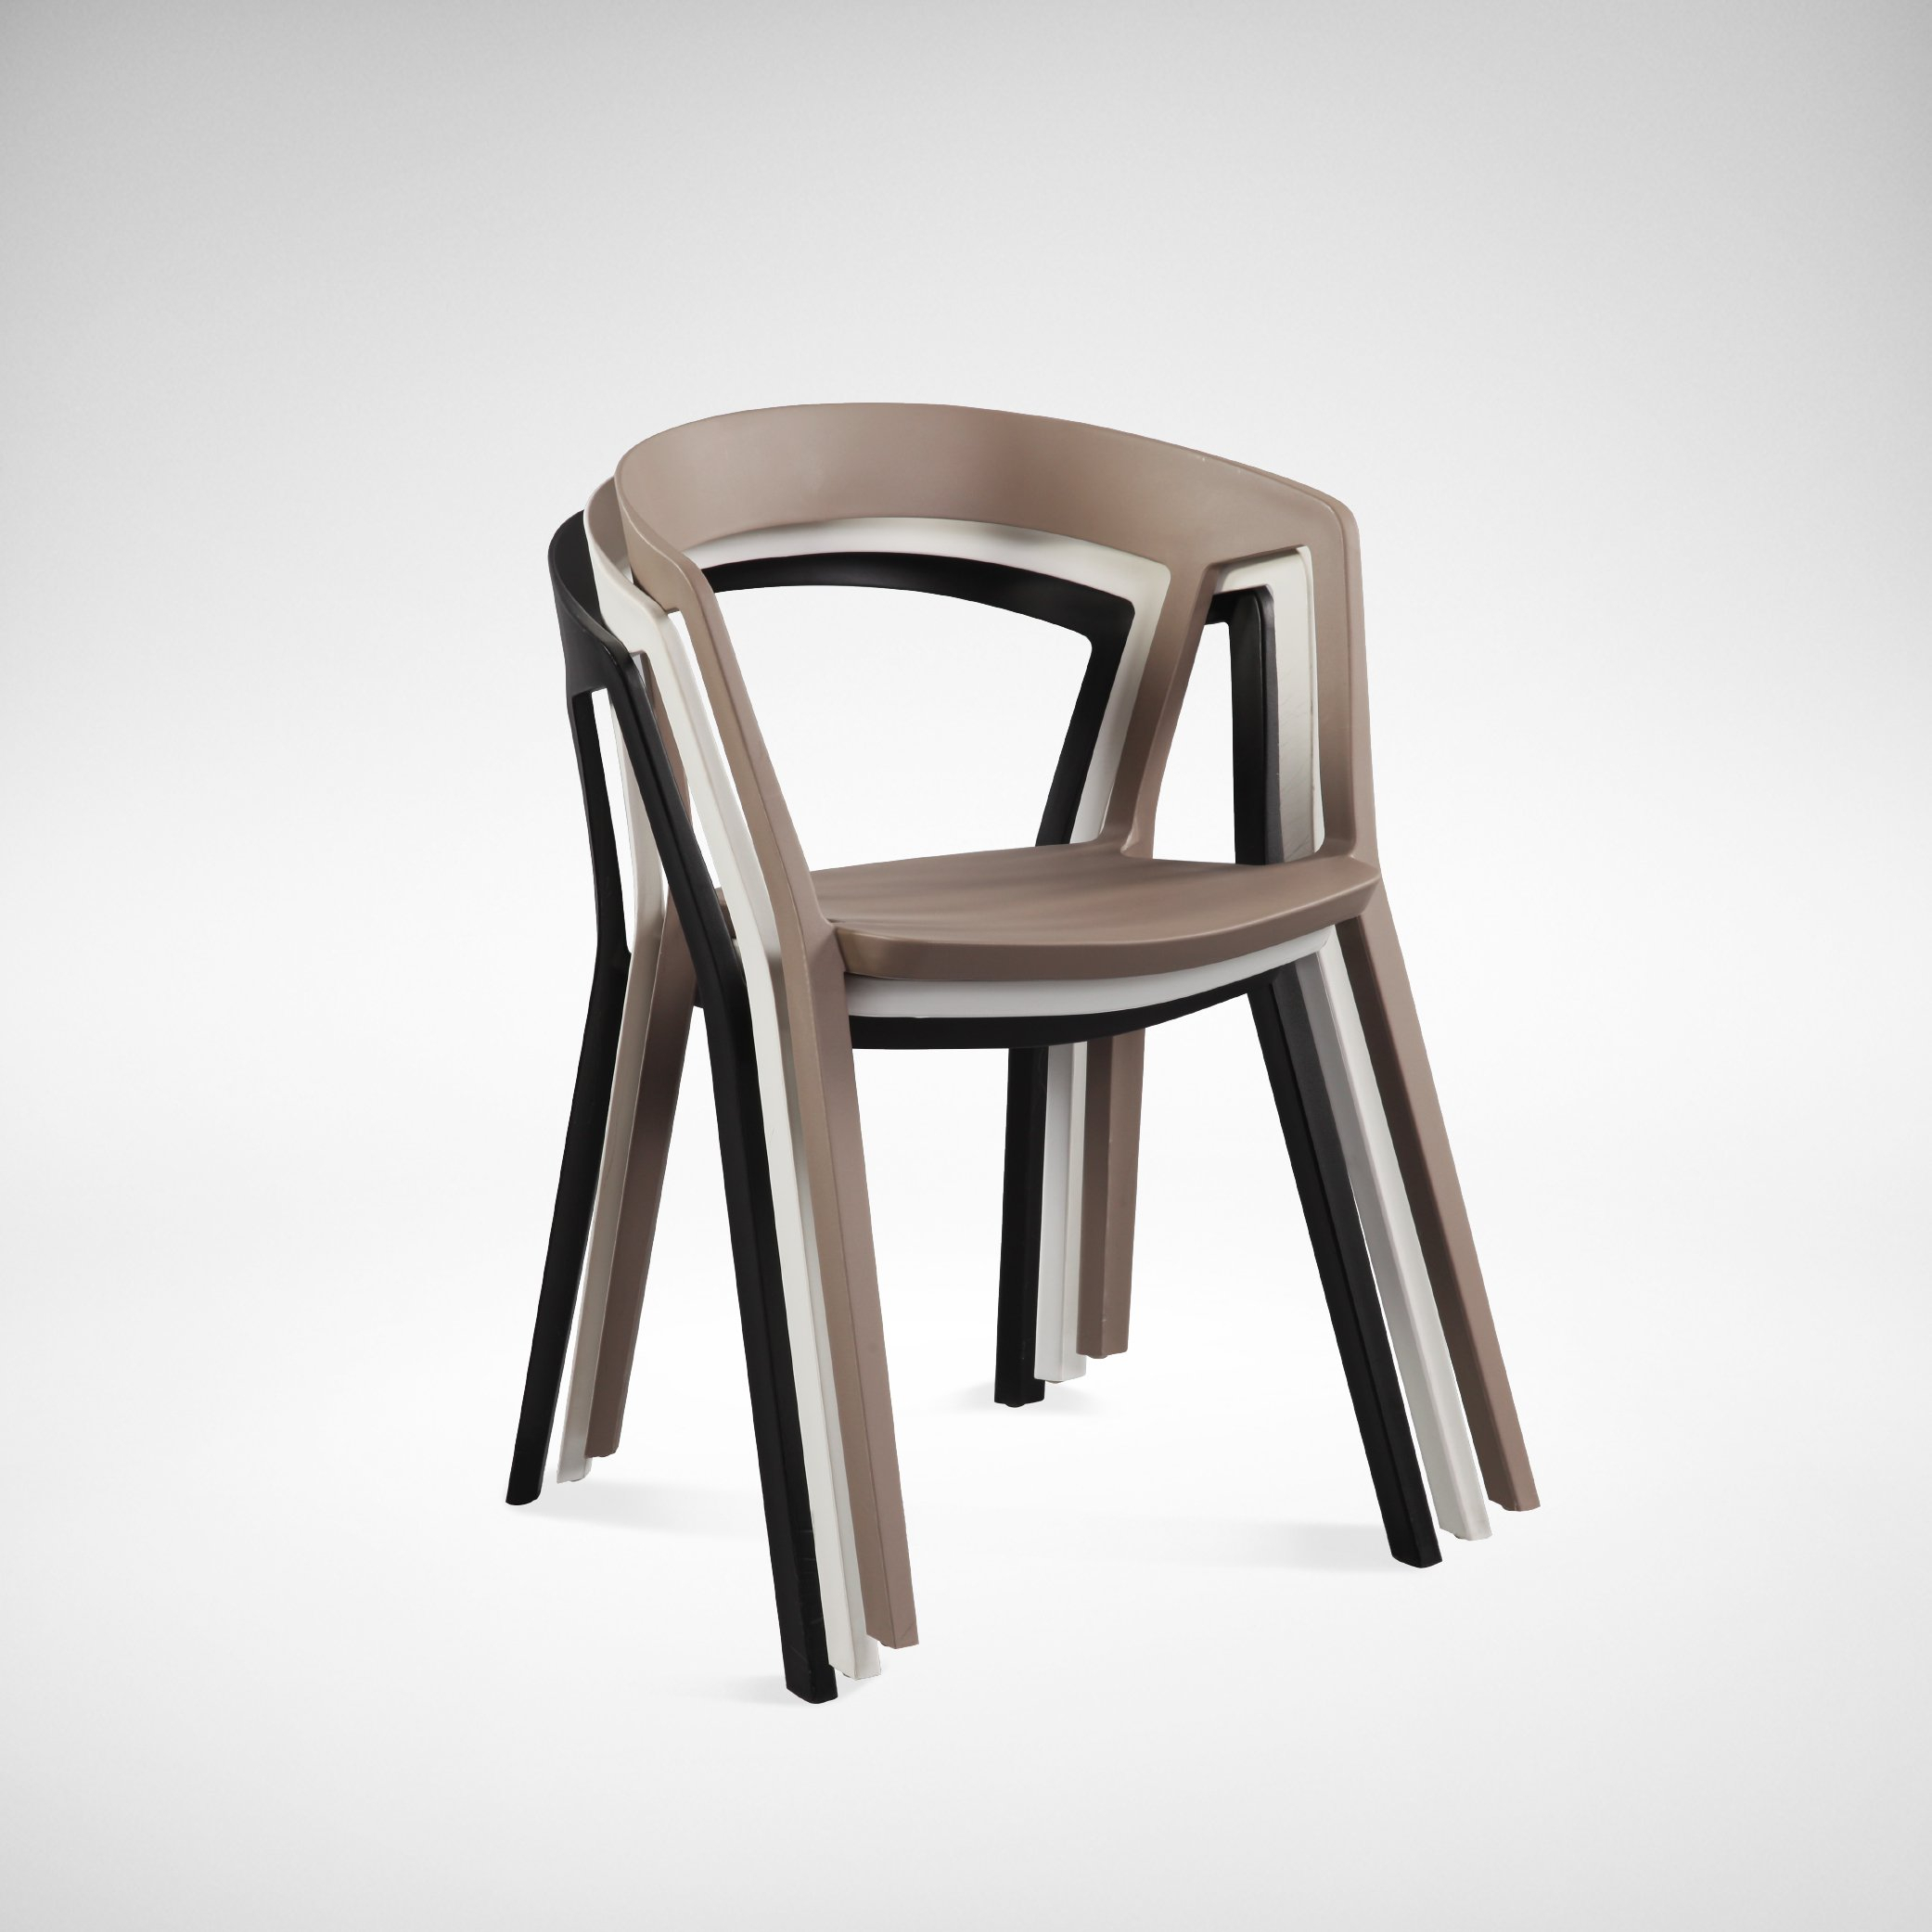 Mitchell Arm Chair | Comfort Design – The Chair & Table People With Regard To Mitchell Arm Sofa Chairs (View 14 of 25)